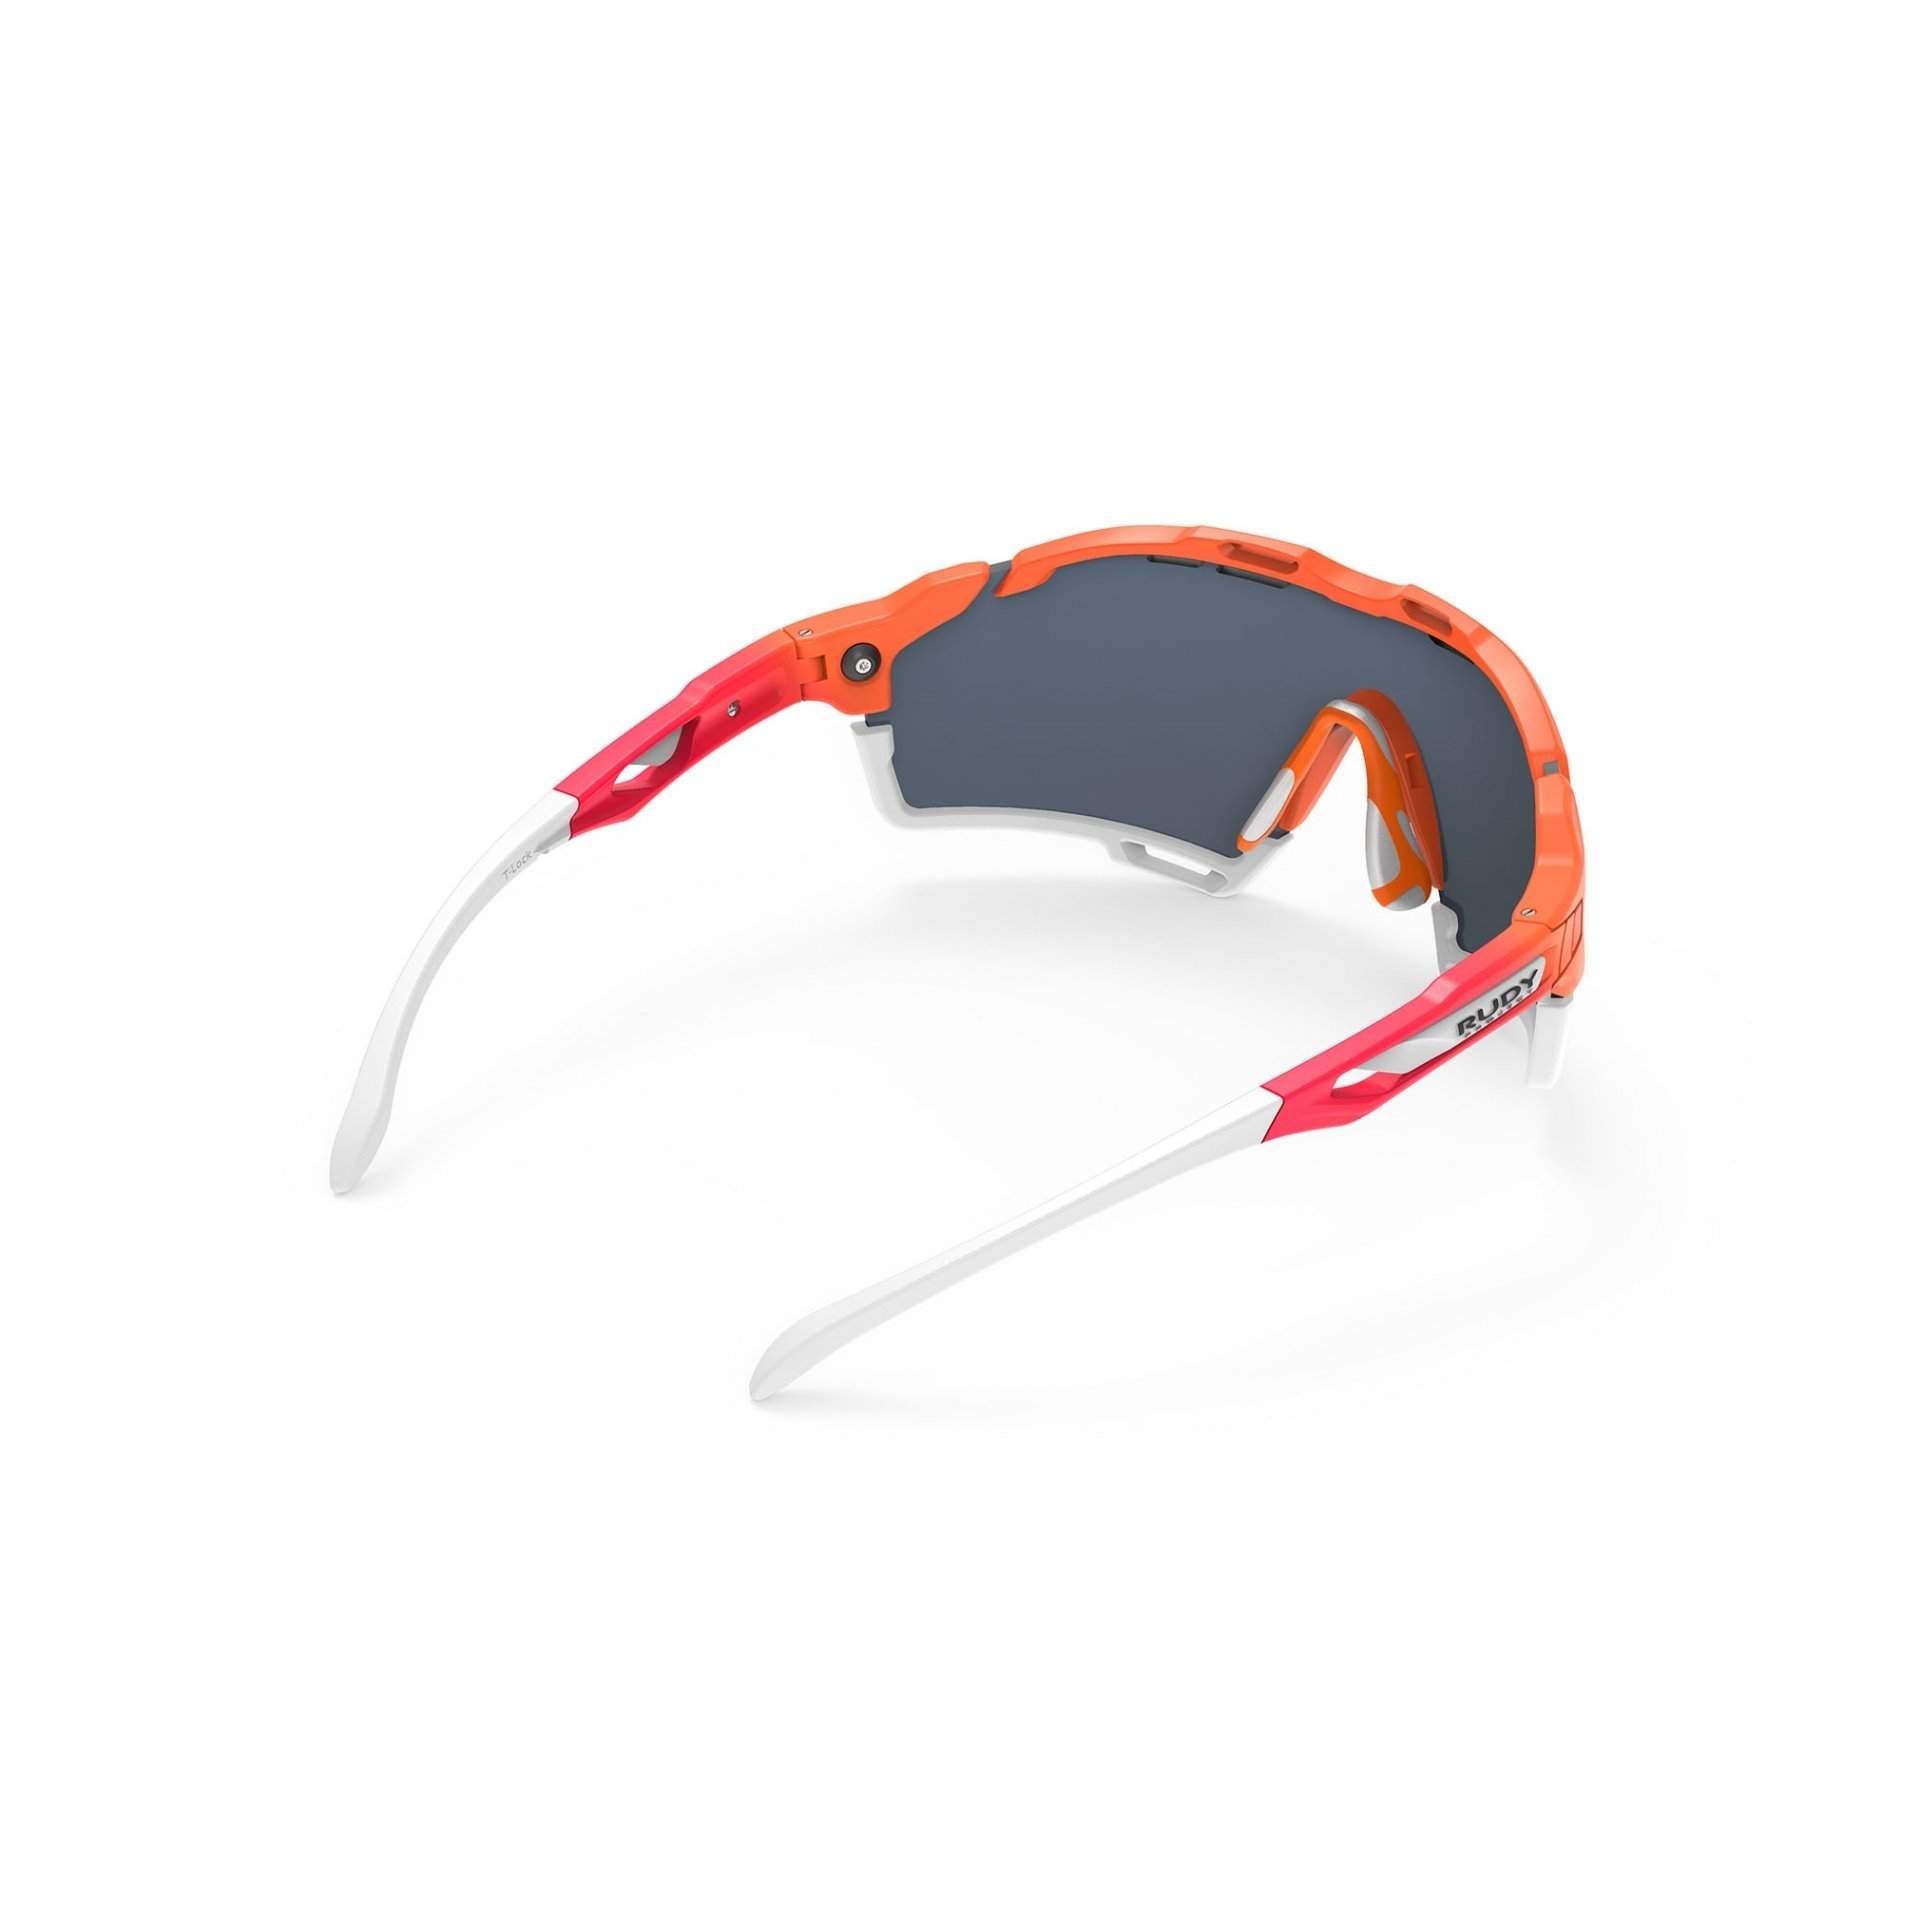 OKULARY RUDY PROJECT CUTLINE MULTILASER RED + MANDARINE FADE|CORAL SP633846|0011 TYŁ